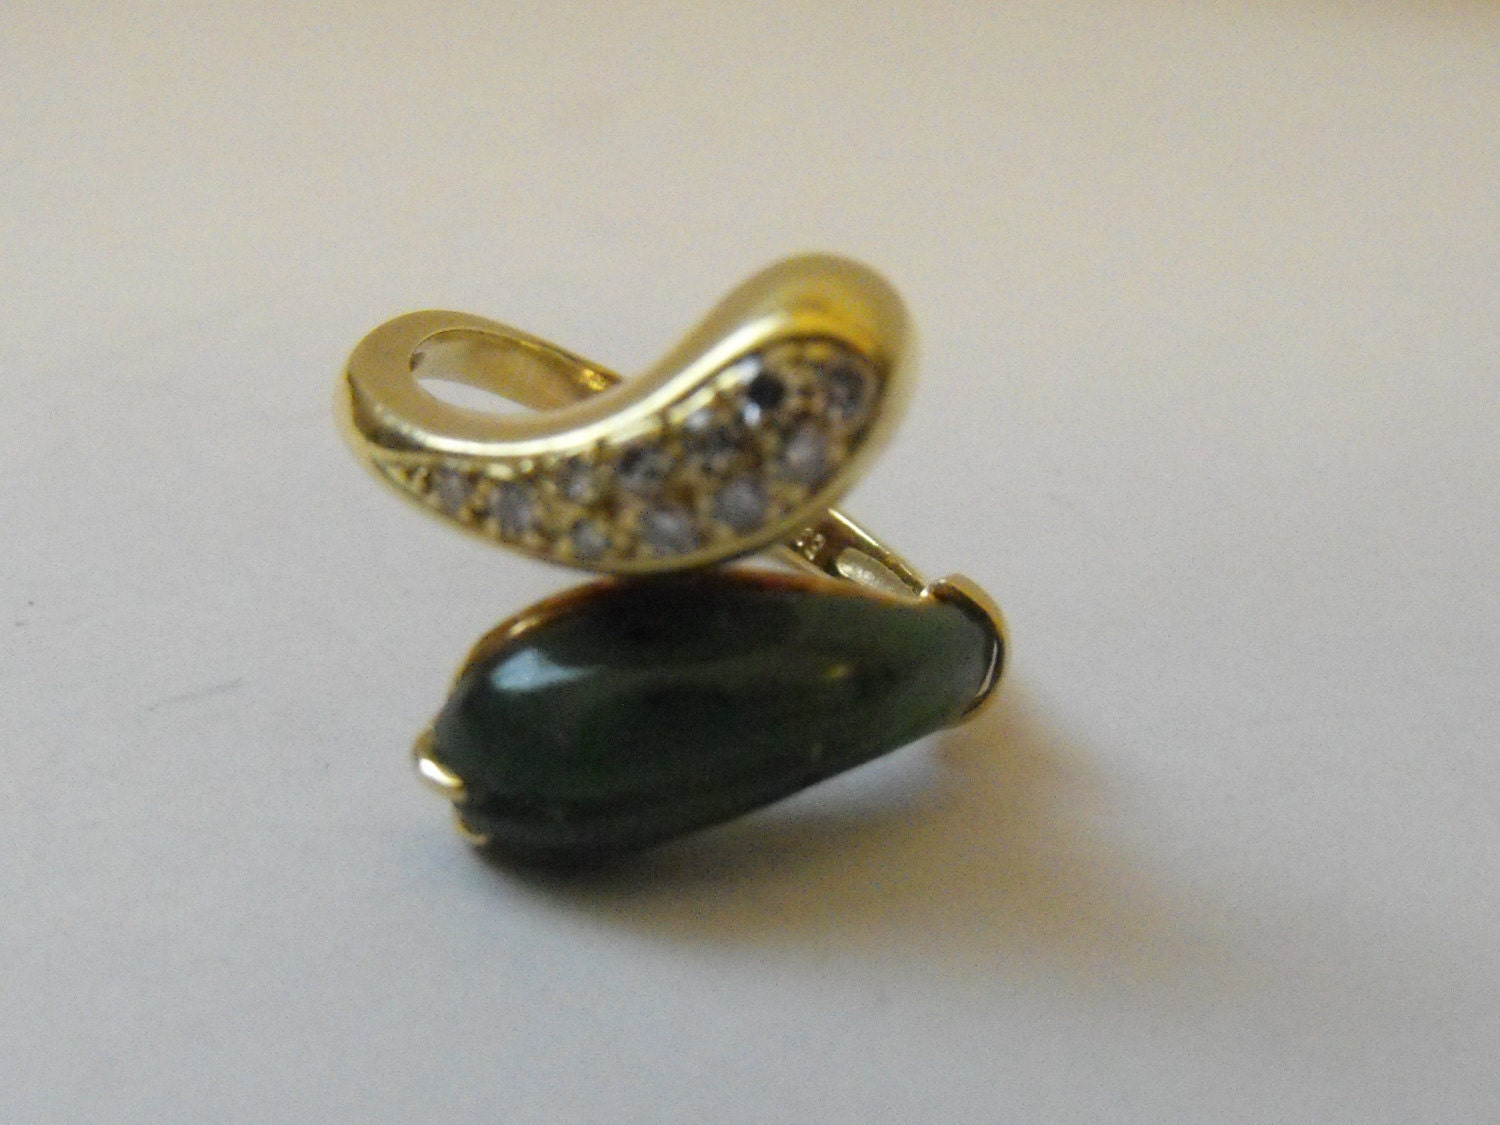 vintage 14k gold snake ring set with a jadeit and 11 diamonds